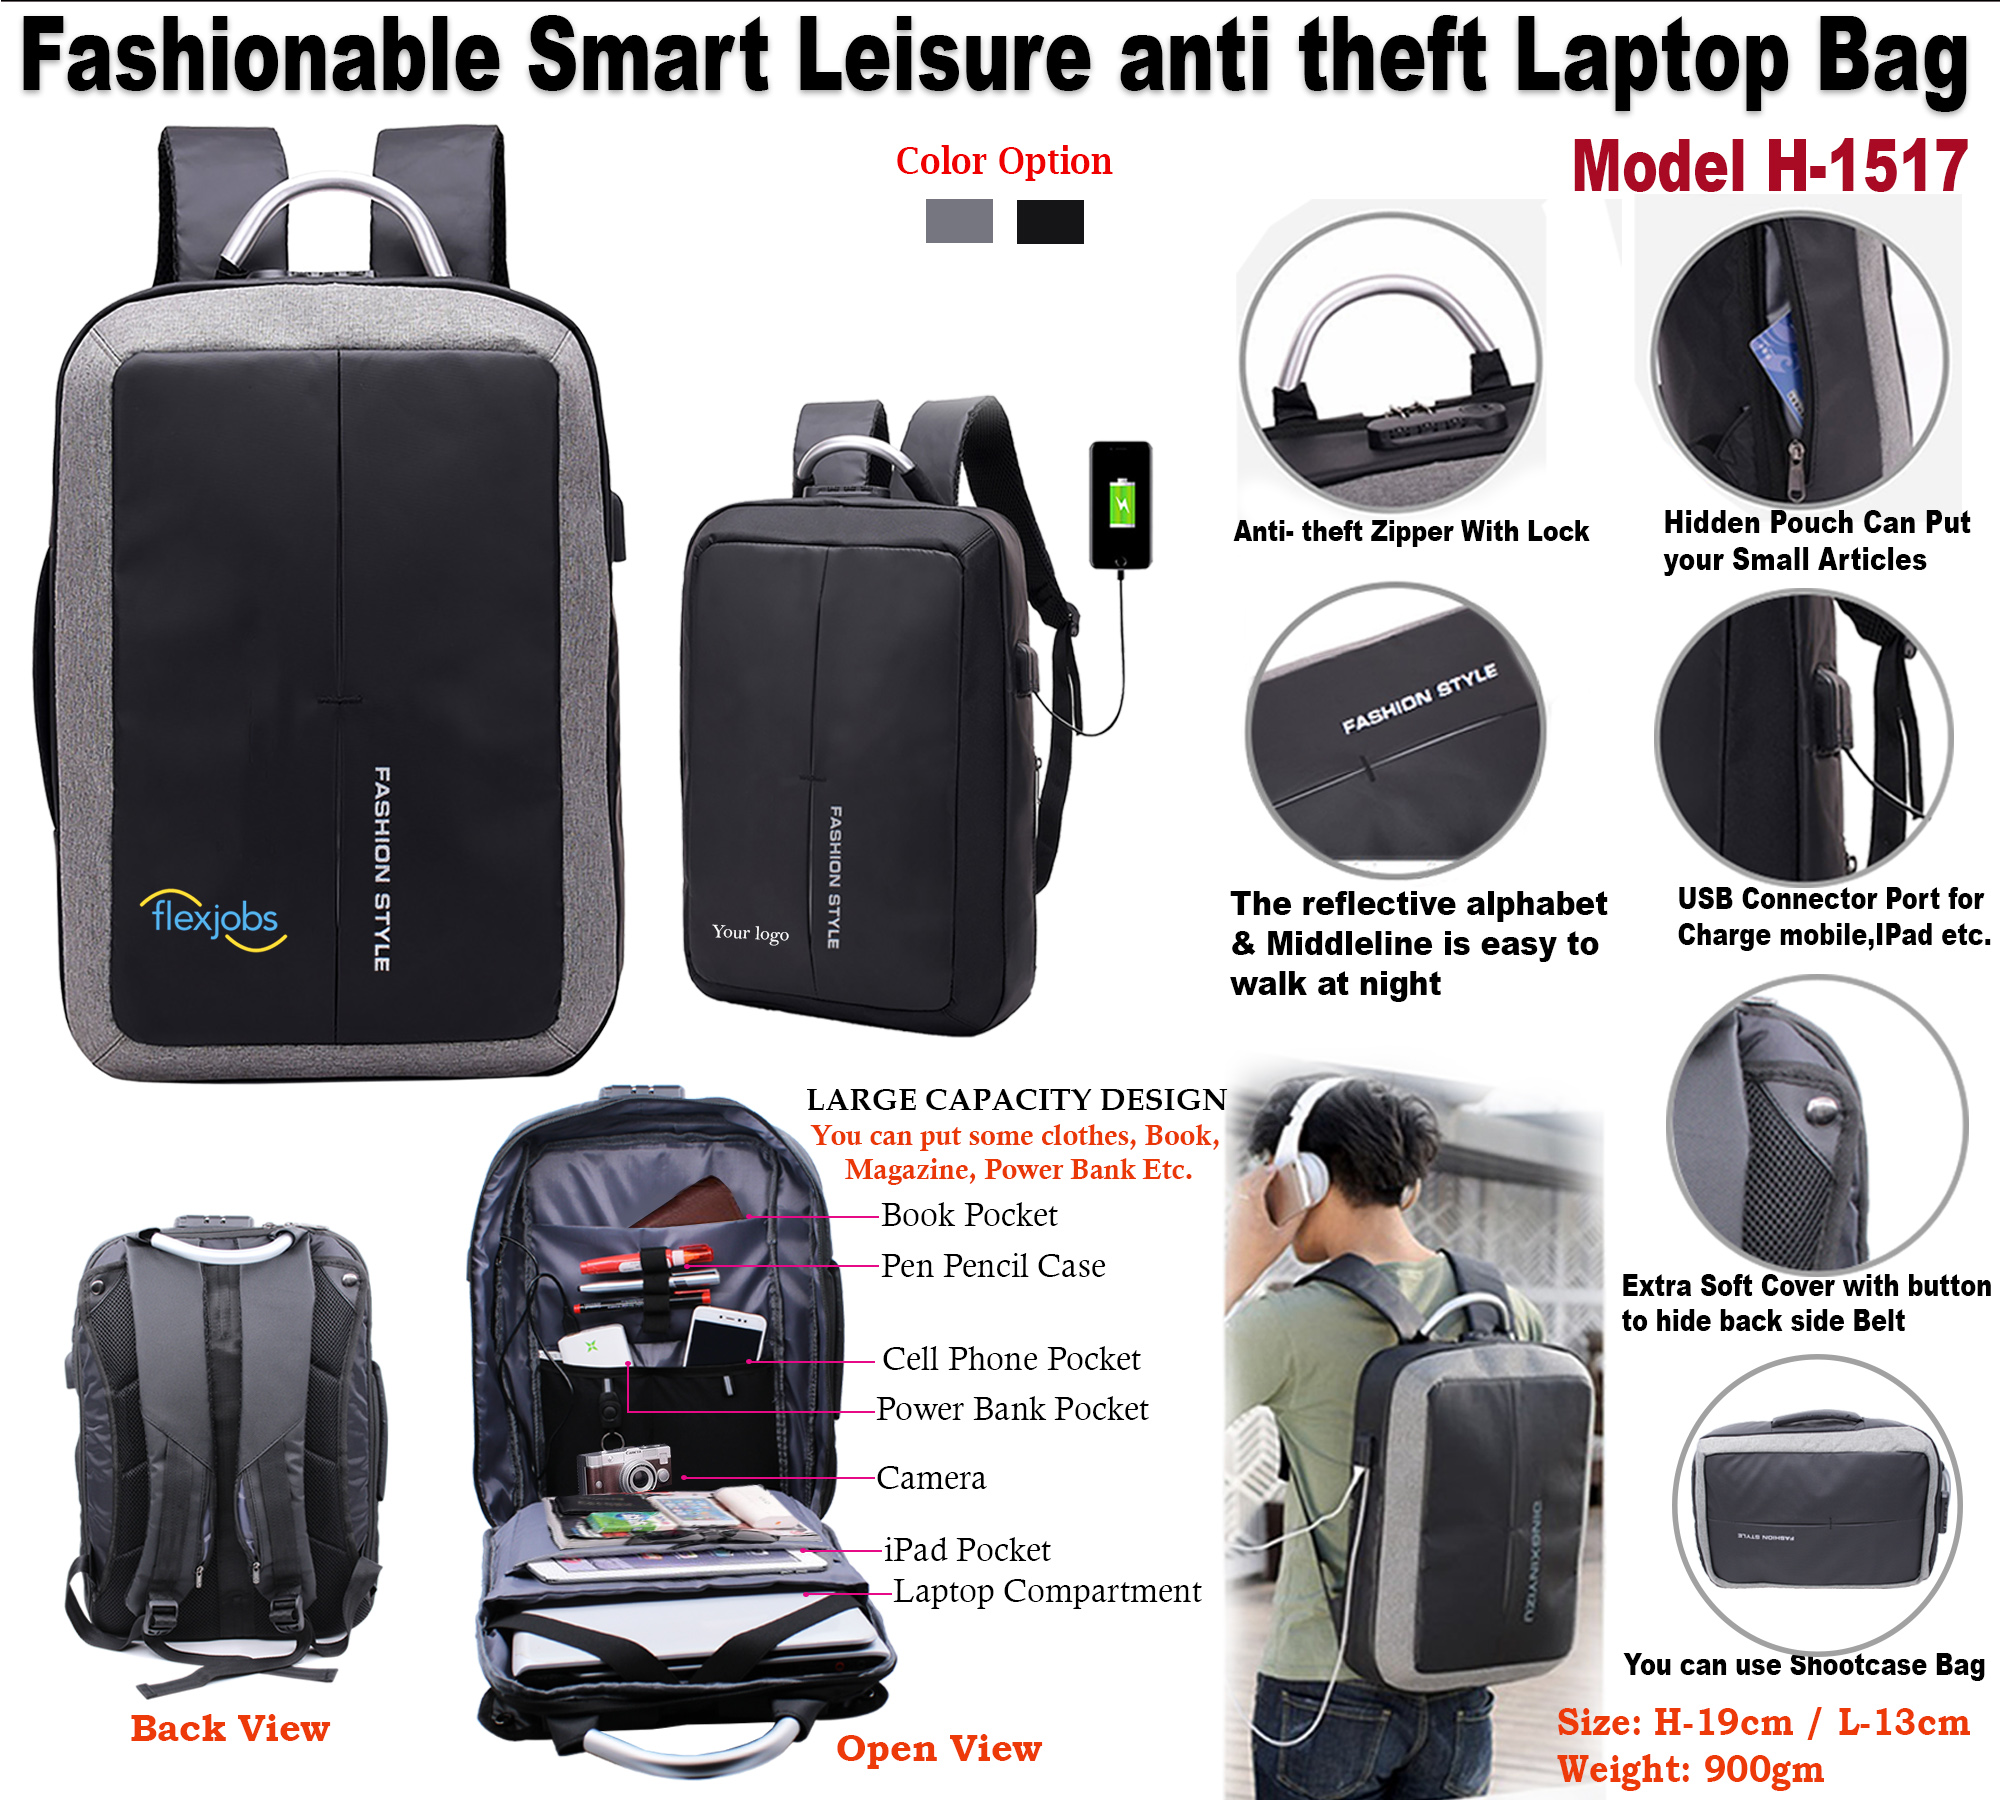 Fashionable Smart Leisure anti theft Laptop Bag H-1517